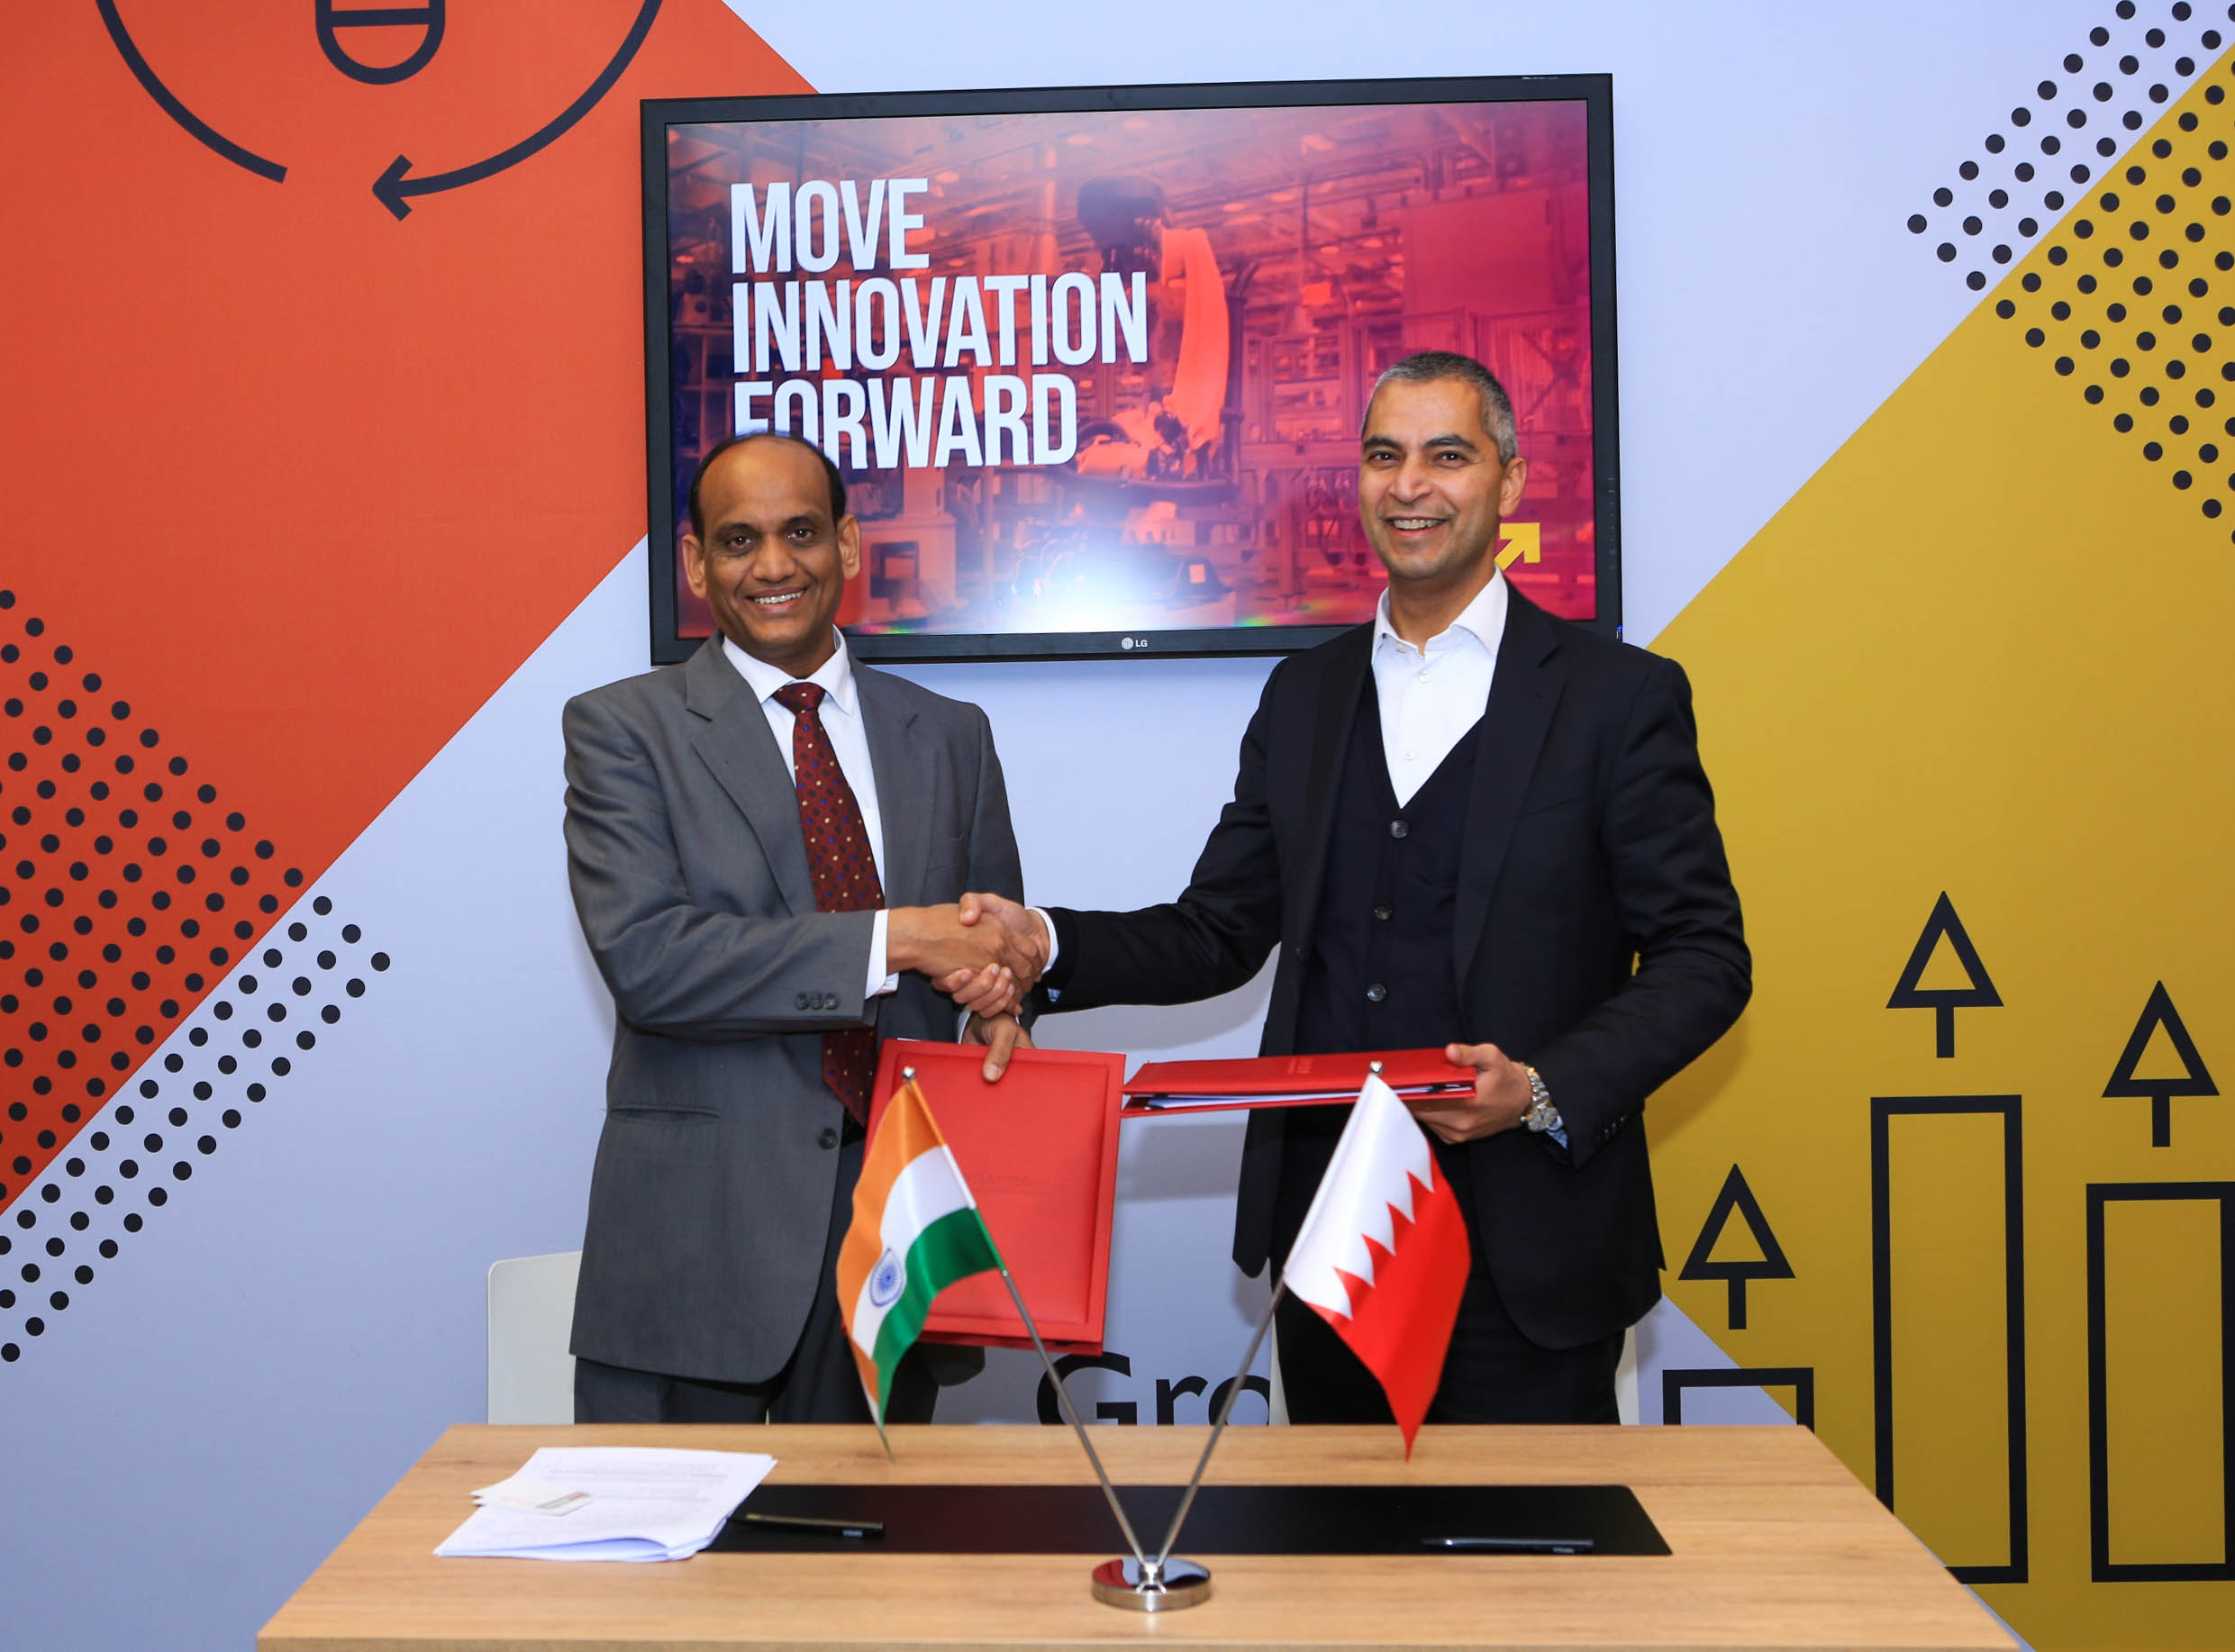 BAHRAIN AND KARNATAKA SIGN MEMORANDUM OF UNDERSTANDING PROMOTING COOPERATION IN FINTECH, AI, IOT AND CYBER-SECURITY